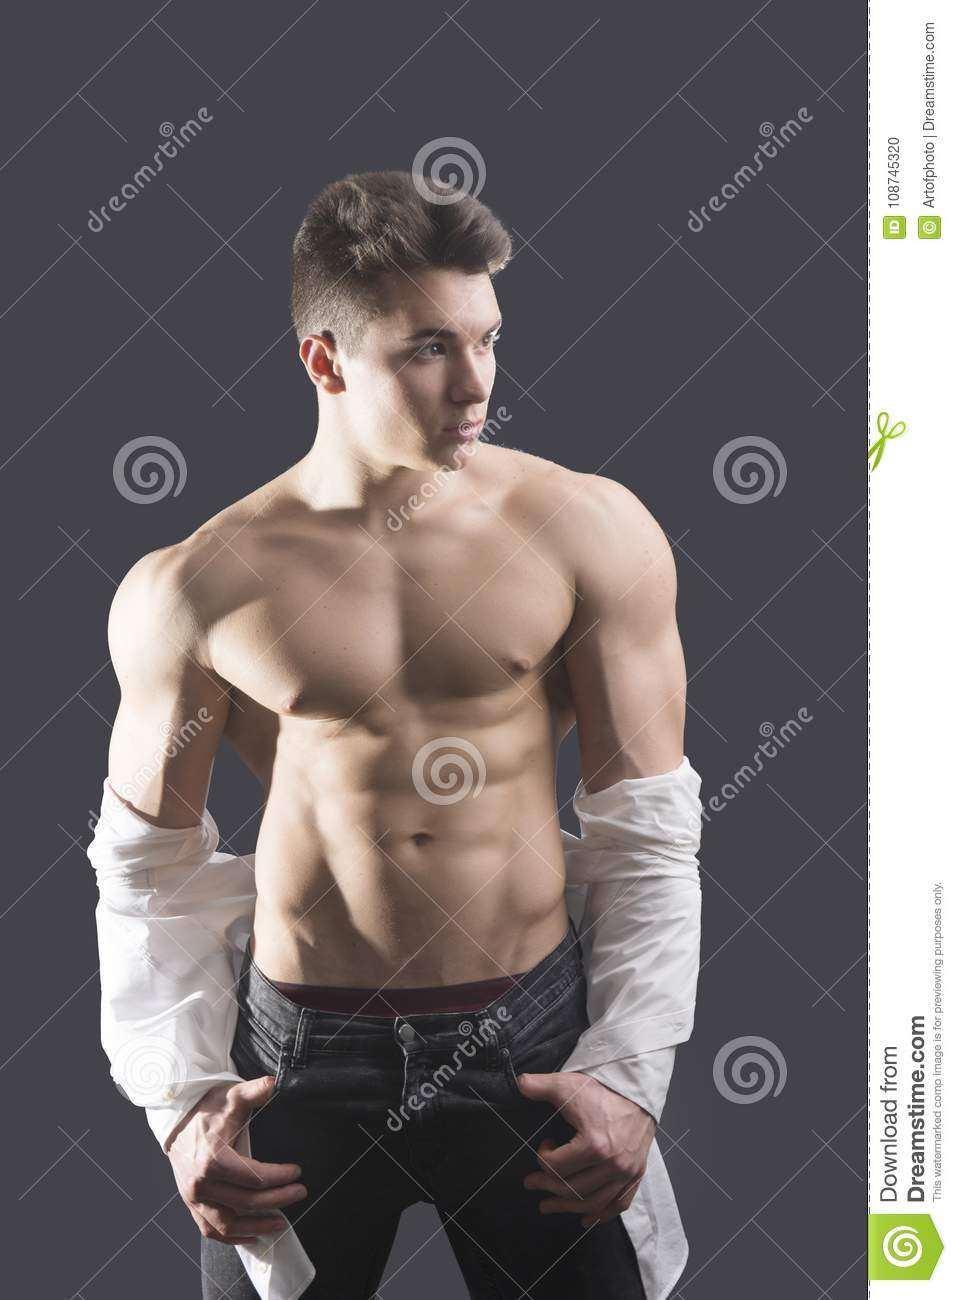 American Gladiators Naked young muscleman undressing on dark background stock photo